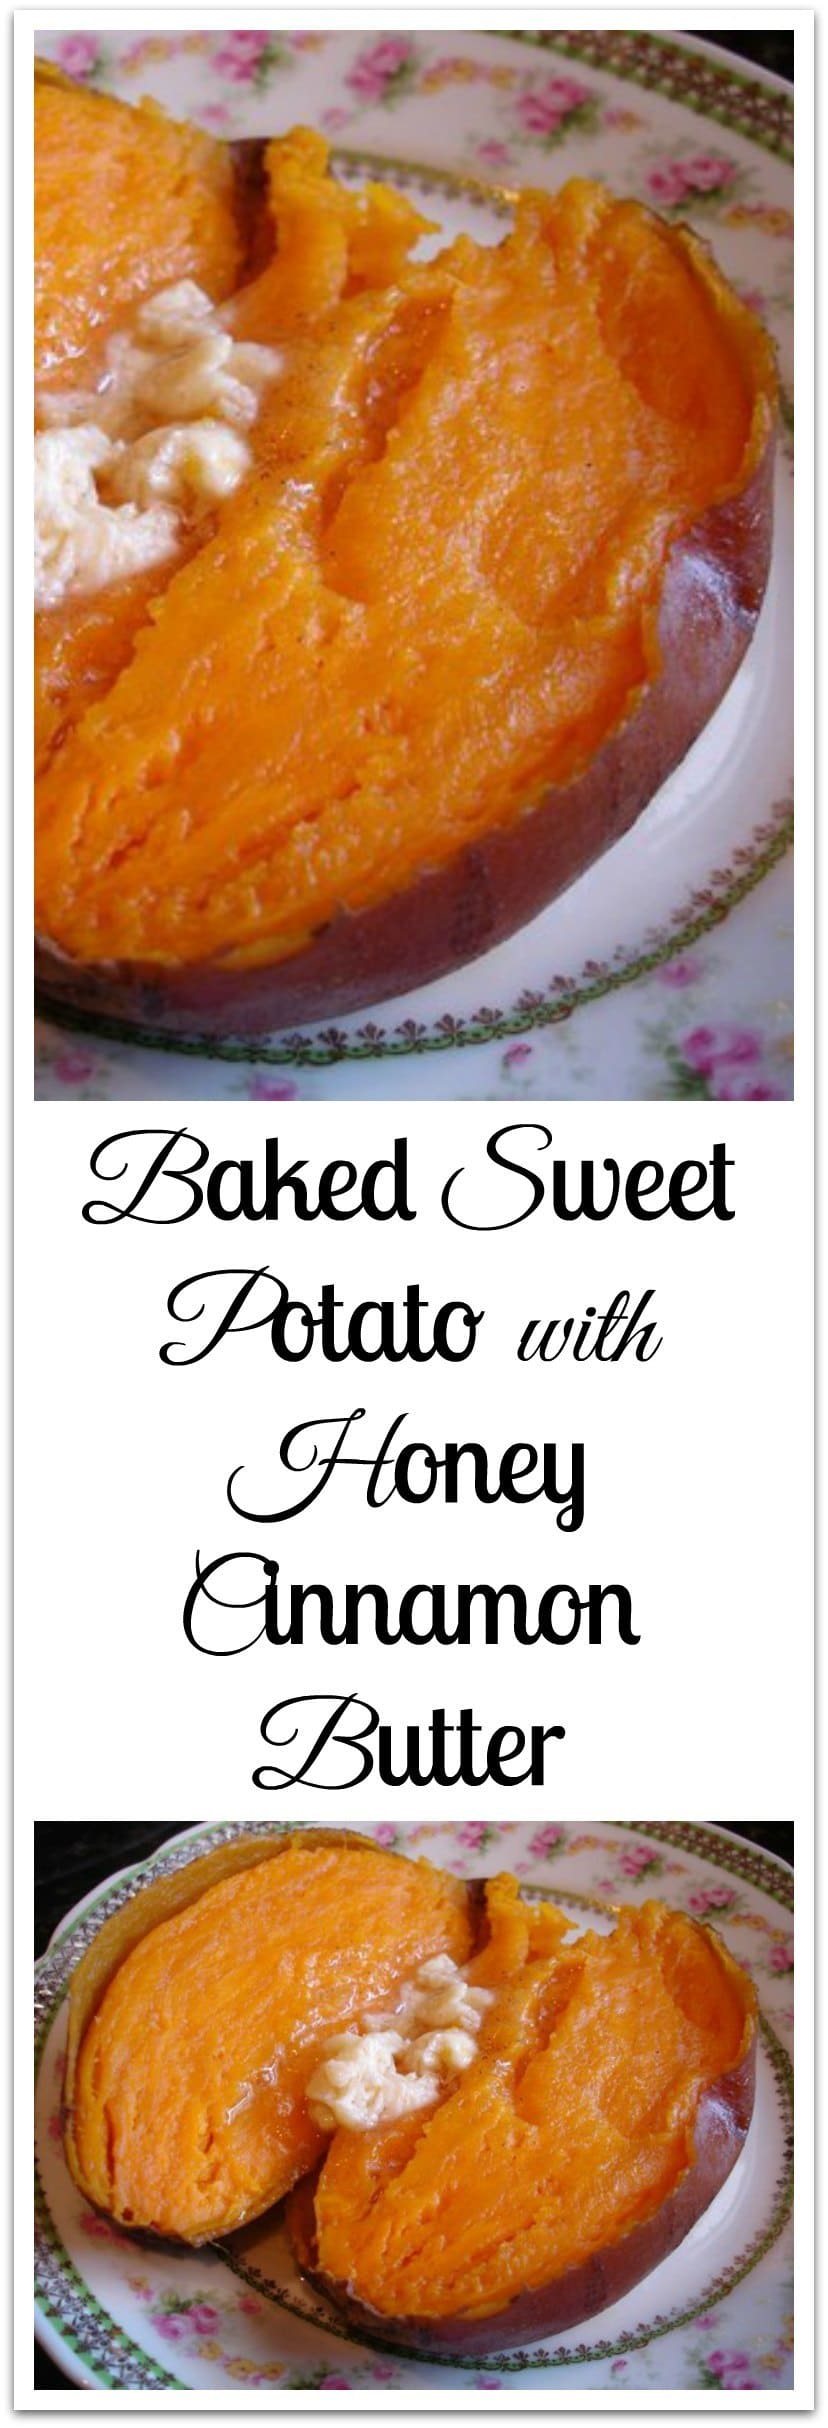 Baking sweet potatoes on a low temp for a longer period of time really helps develop the flavor. I baked these on 300 degrees for a couple of hours until they were soft. Serve with Honey Cinnamon Butter. #SweetPotatoes #HoneyCinnamonButter